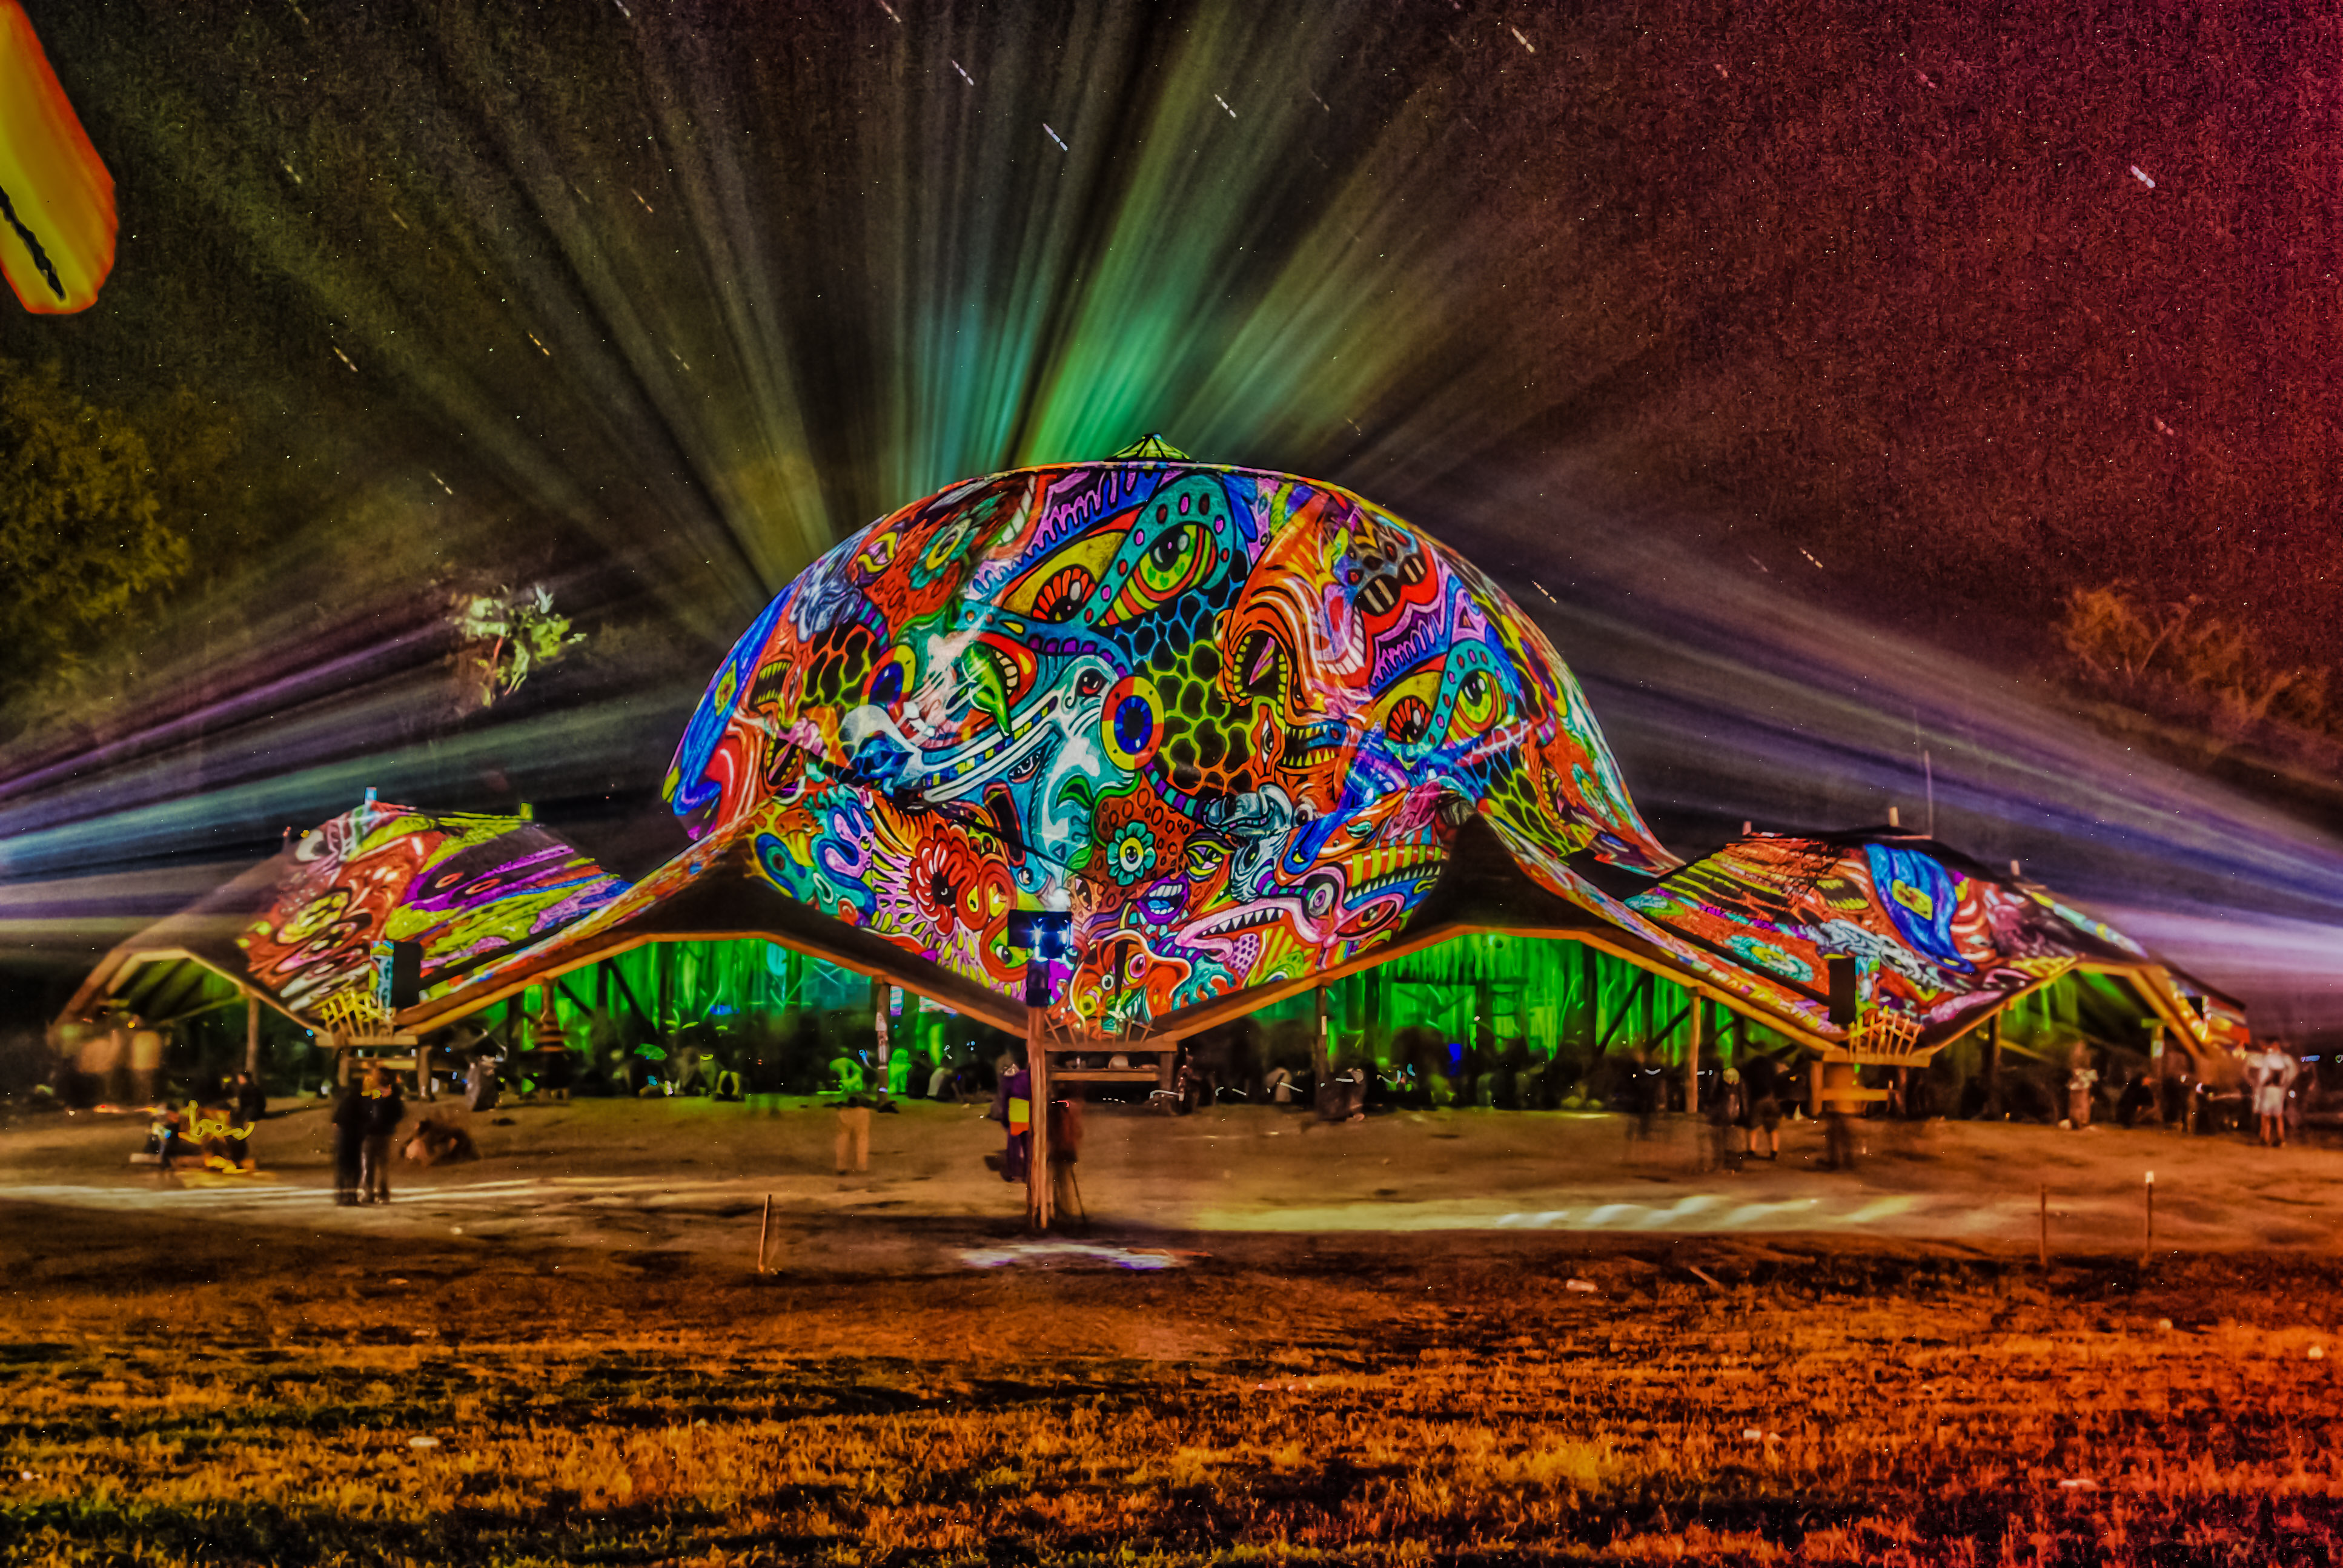 Ozora Festival Ozora 2012 17 Flickr Photo Sharing